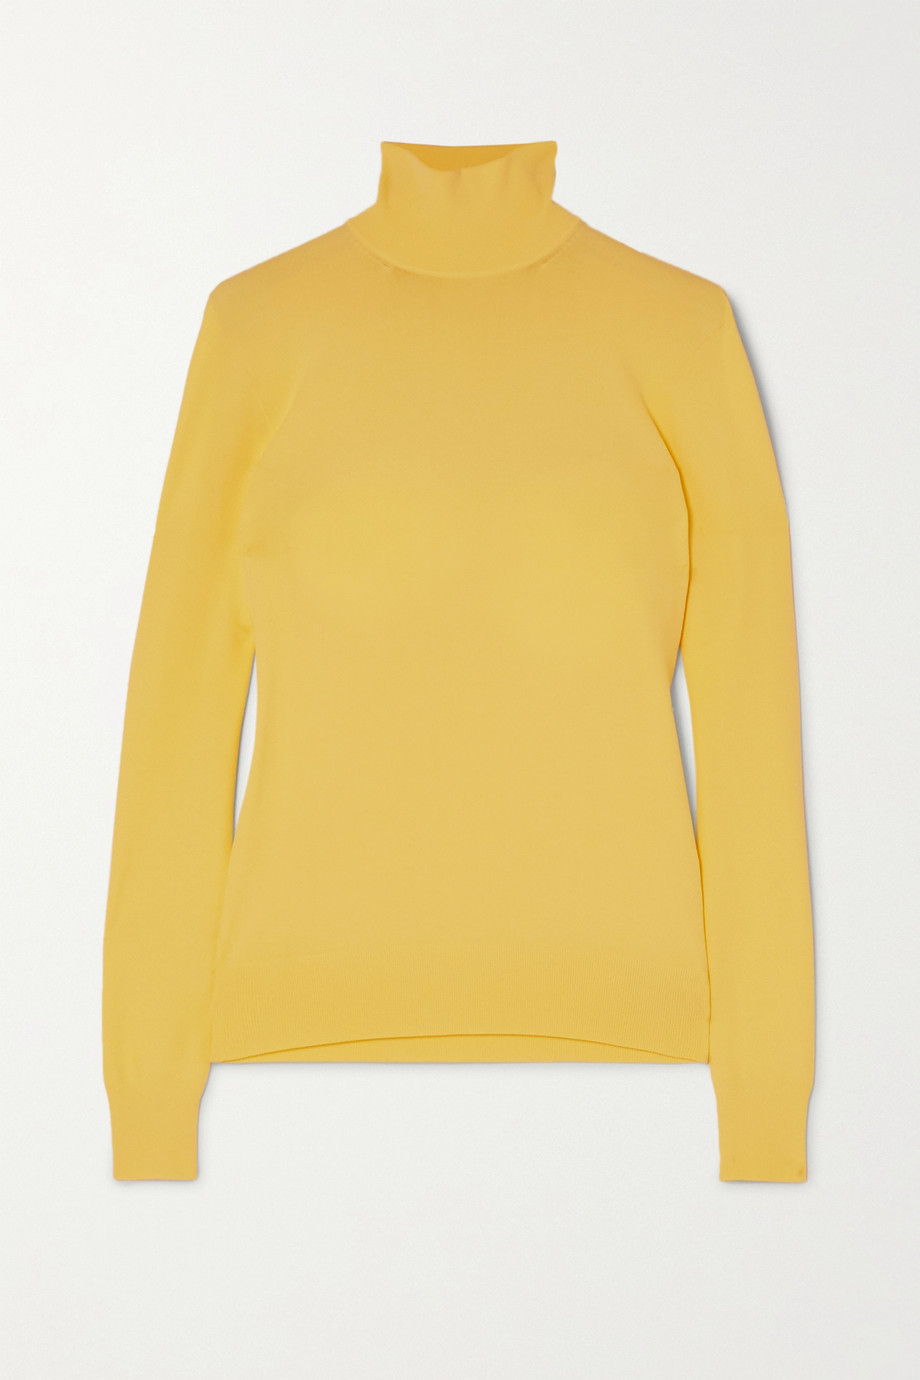 Bottega Veneta Knitted turtleneck sweater